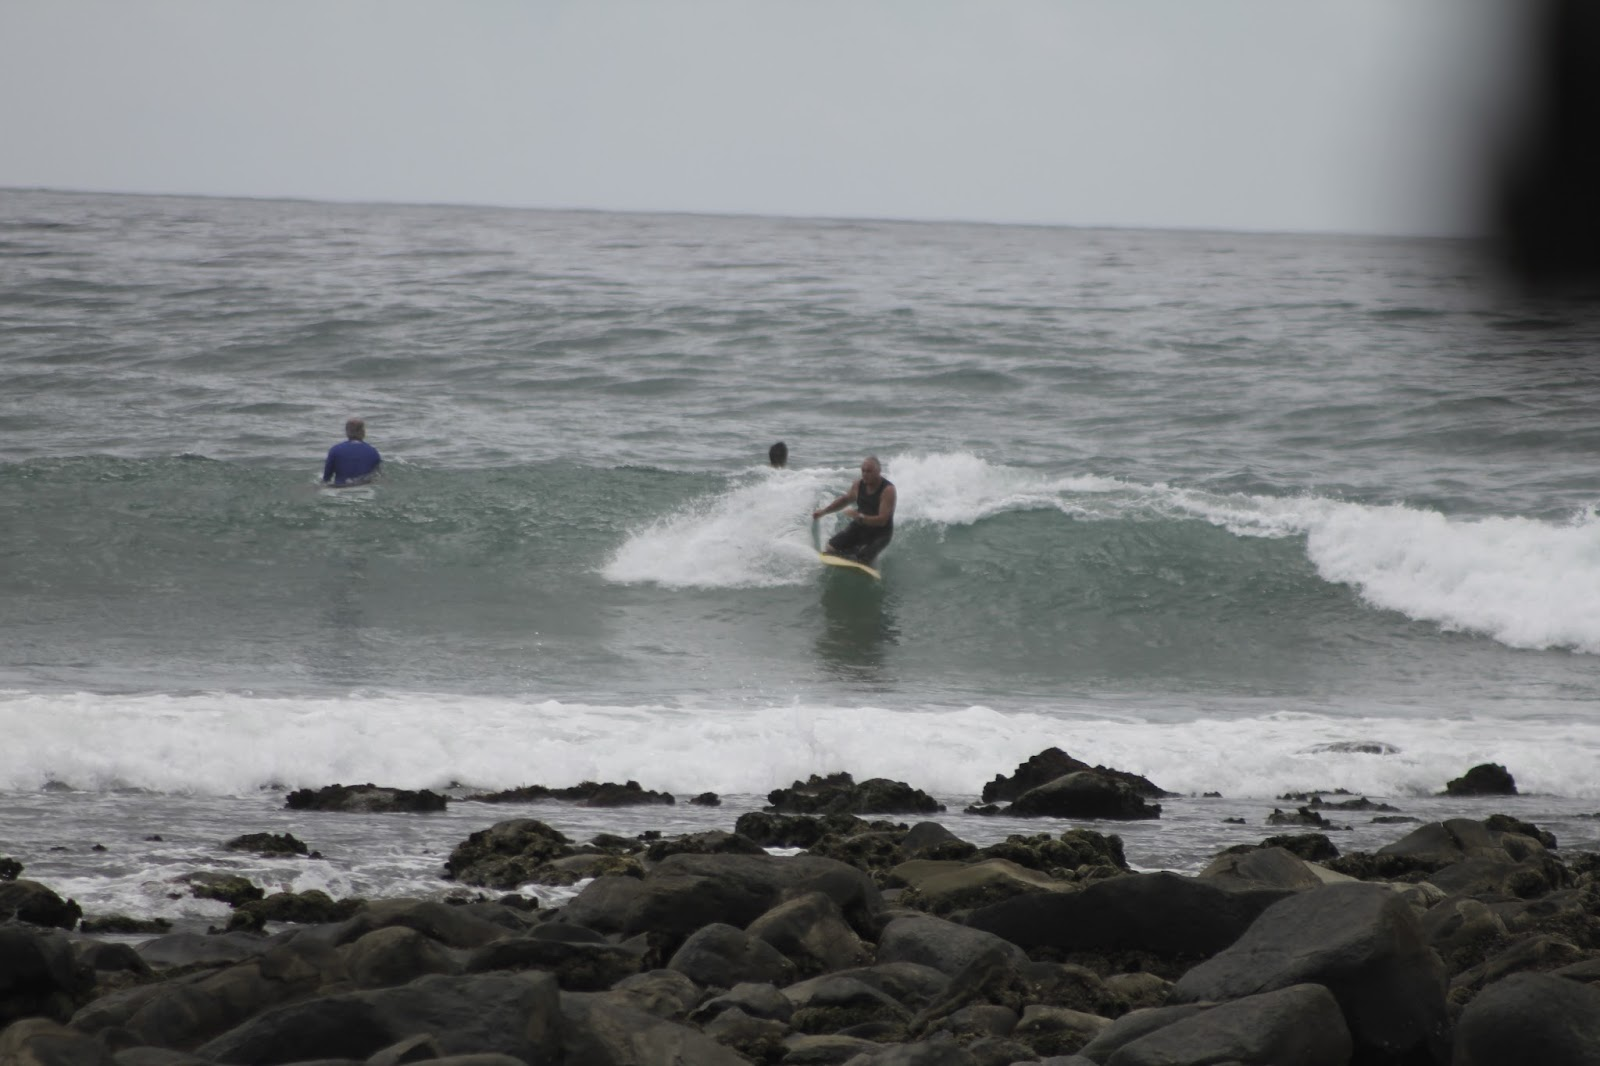 06-03-2016-australia-siebert-surfboards-08